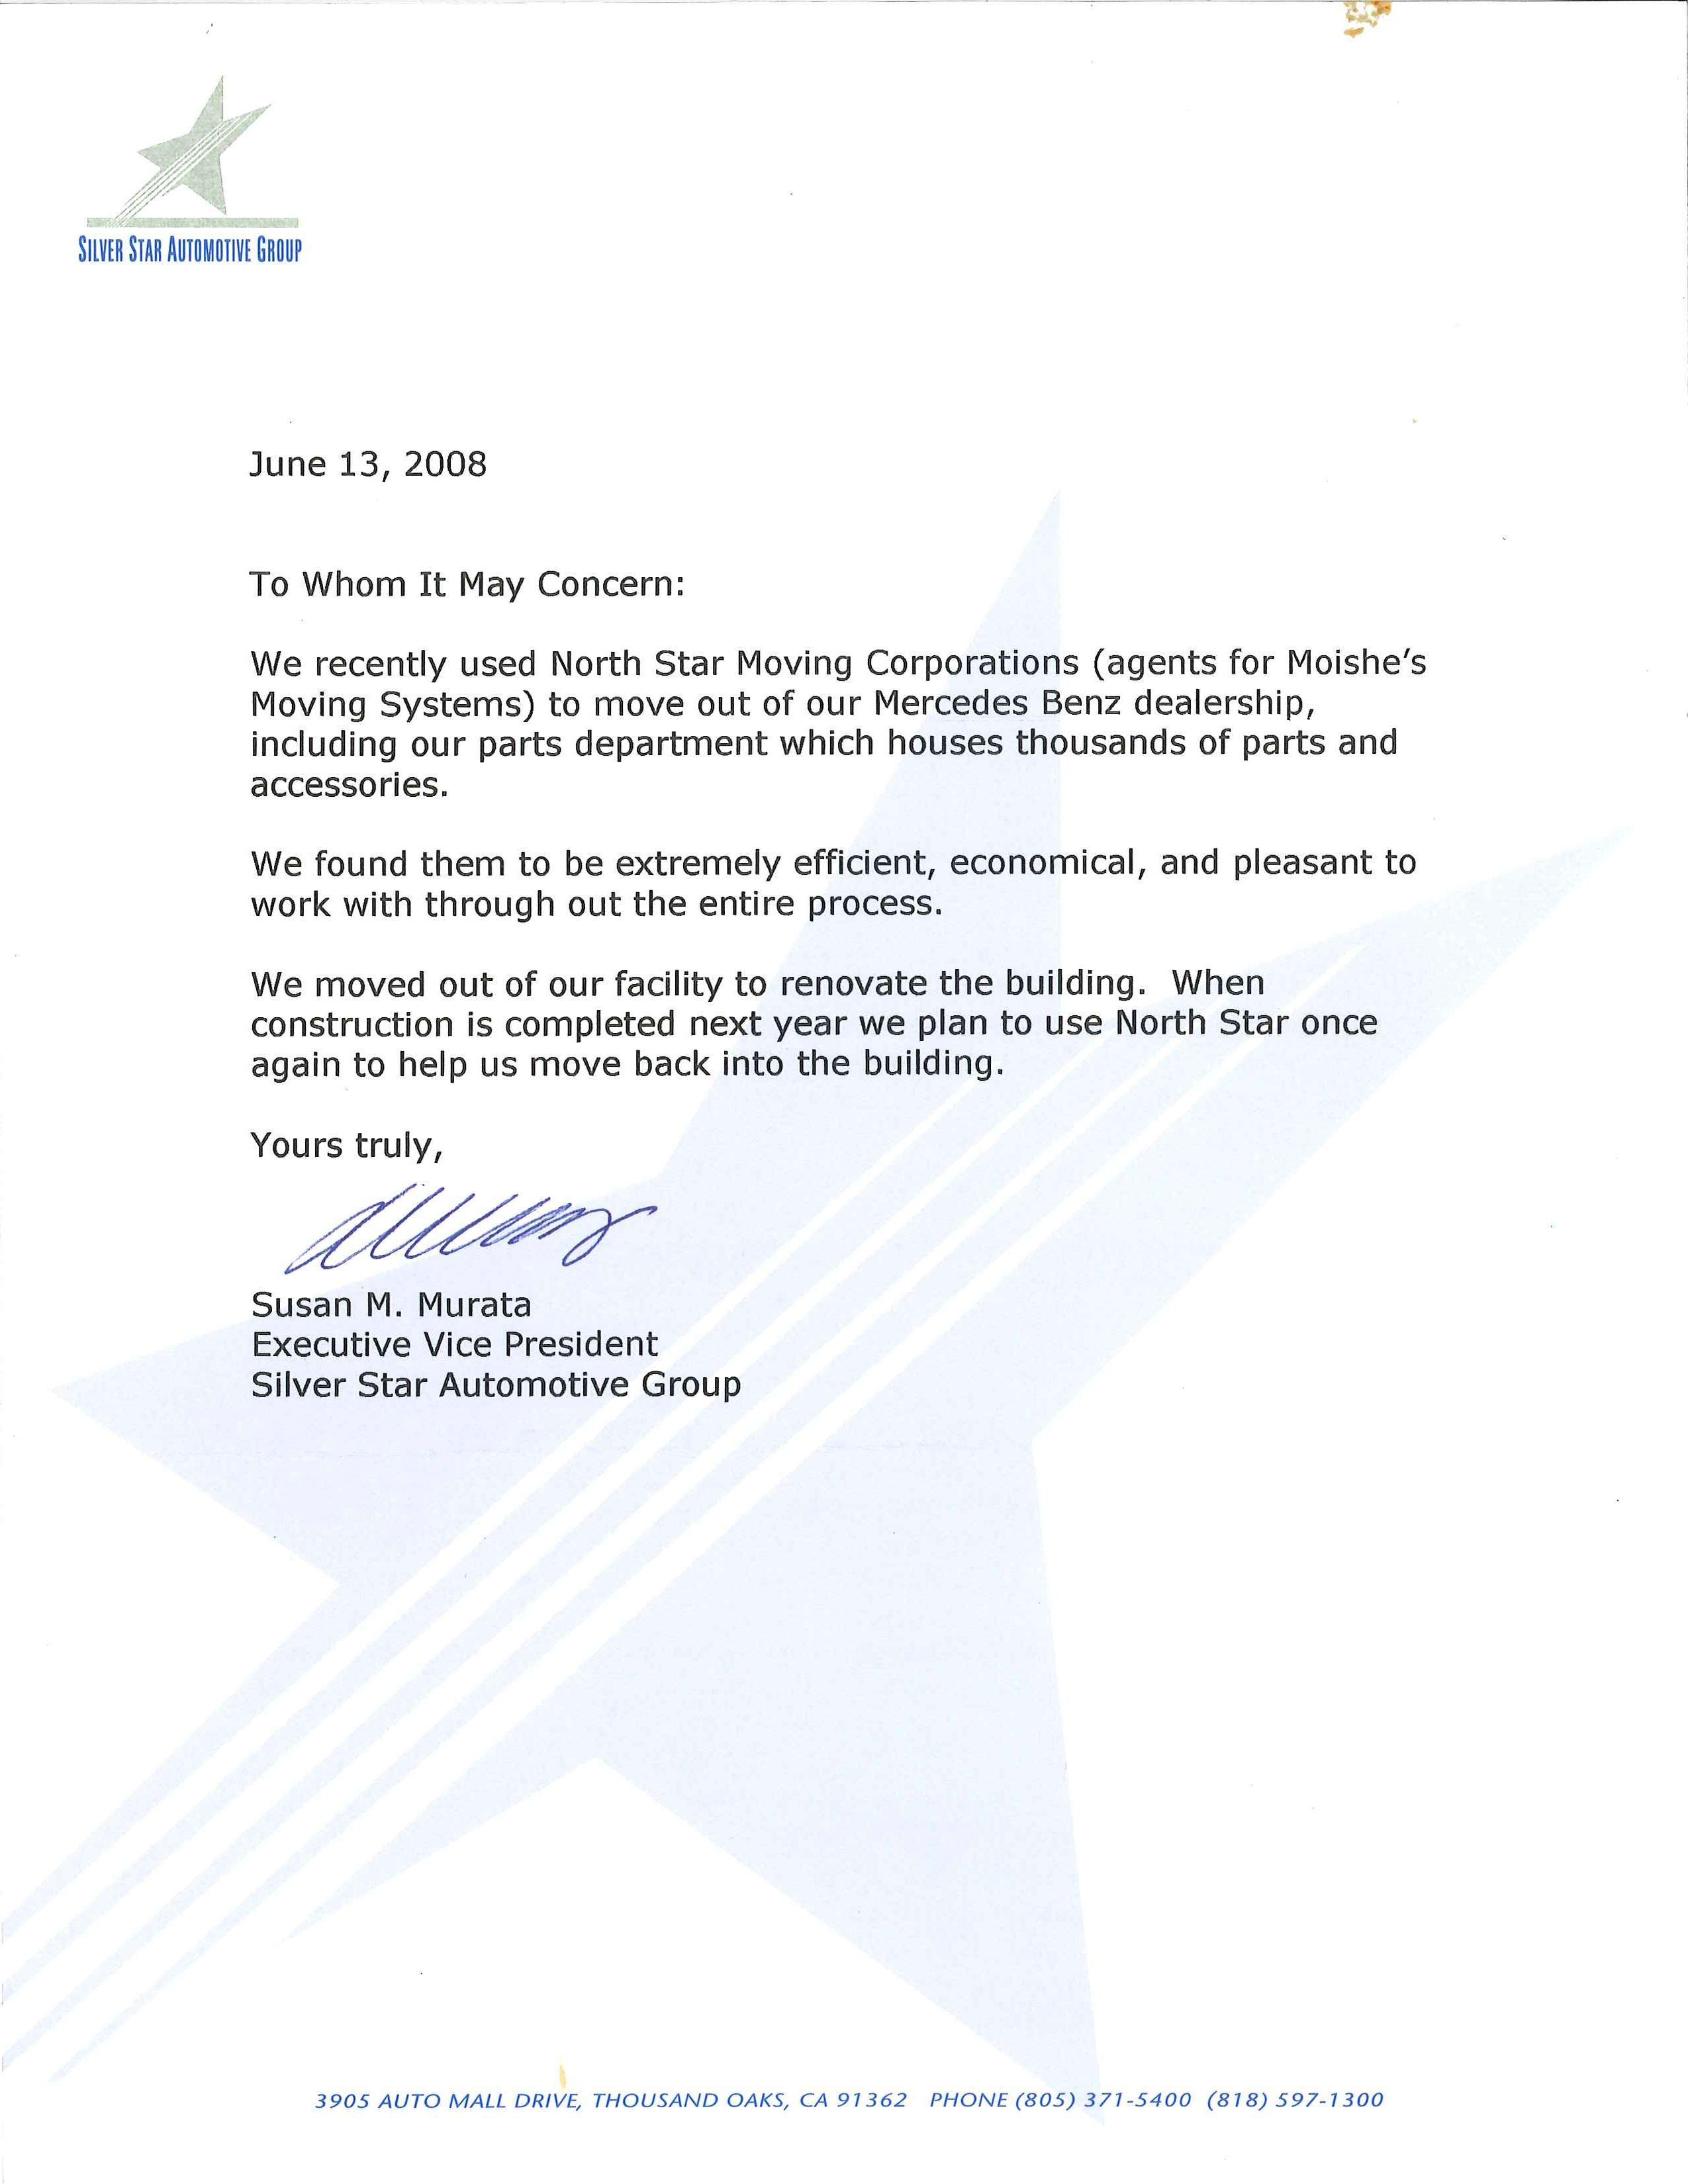 Recommendation Letter from Silver Star Automotive Group